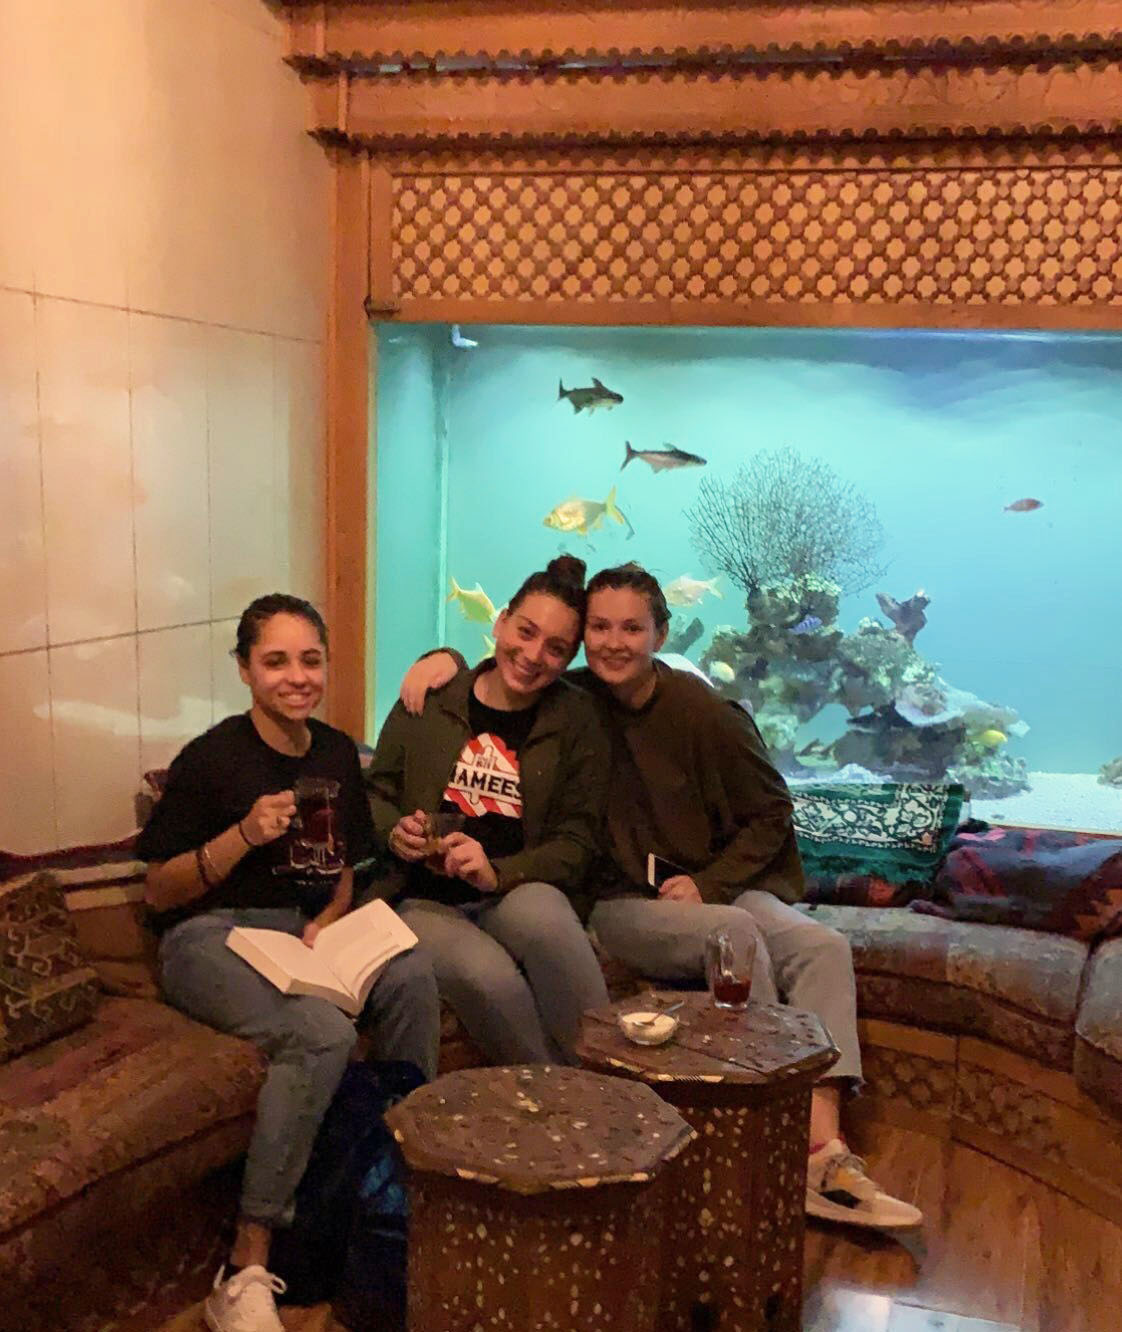 Enjoying our tea after a day at the hamam! Photo credit: M. Arguin, 2019